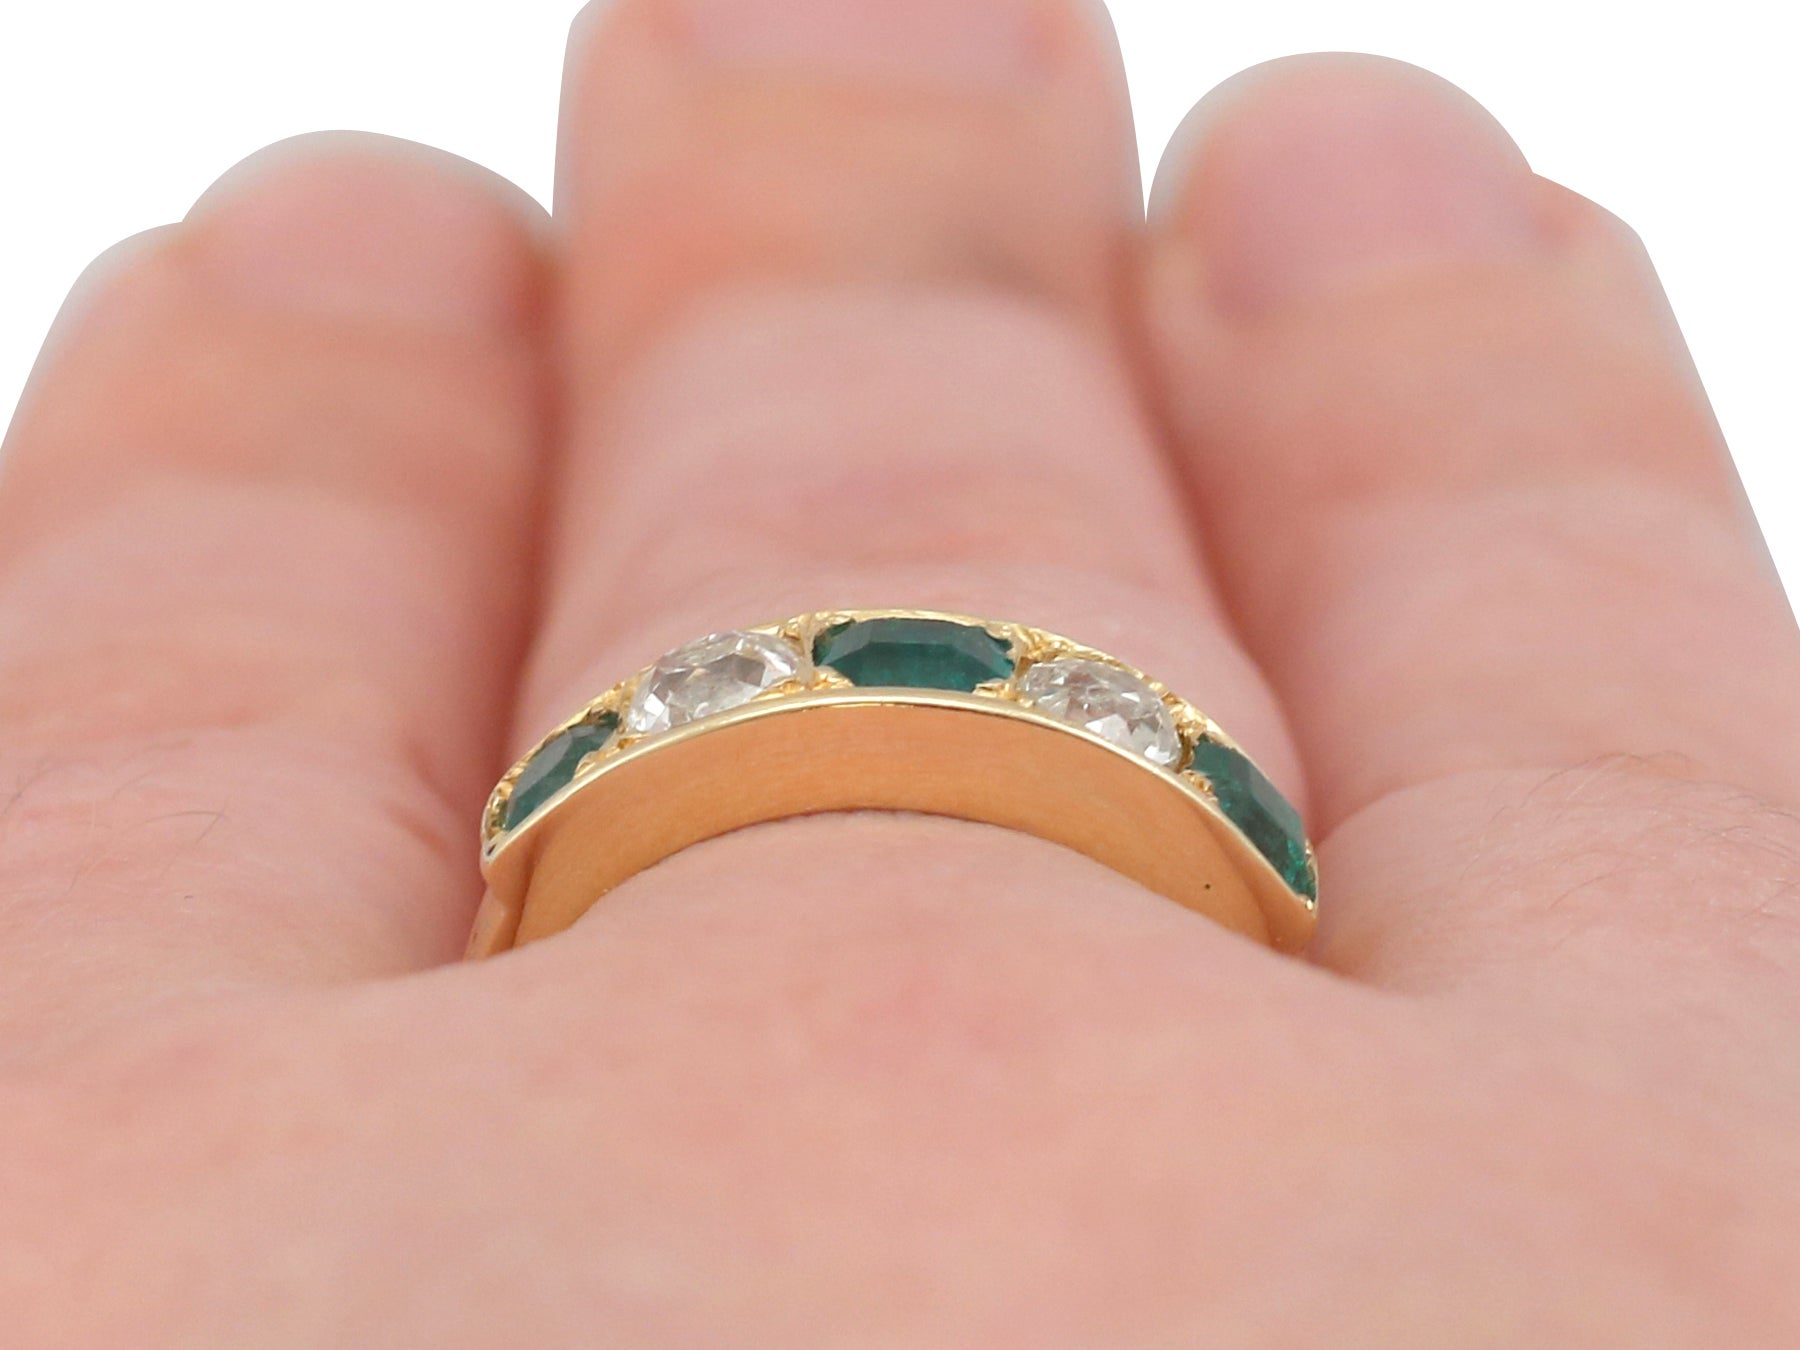 1920s Antique Emerald and Diamond Yellow Gold Ring For Sale at 1stdibs